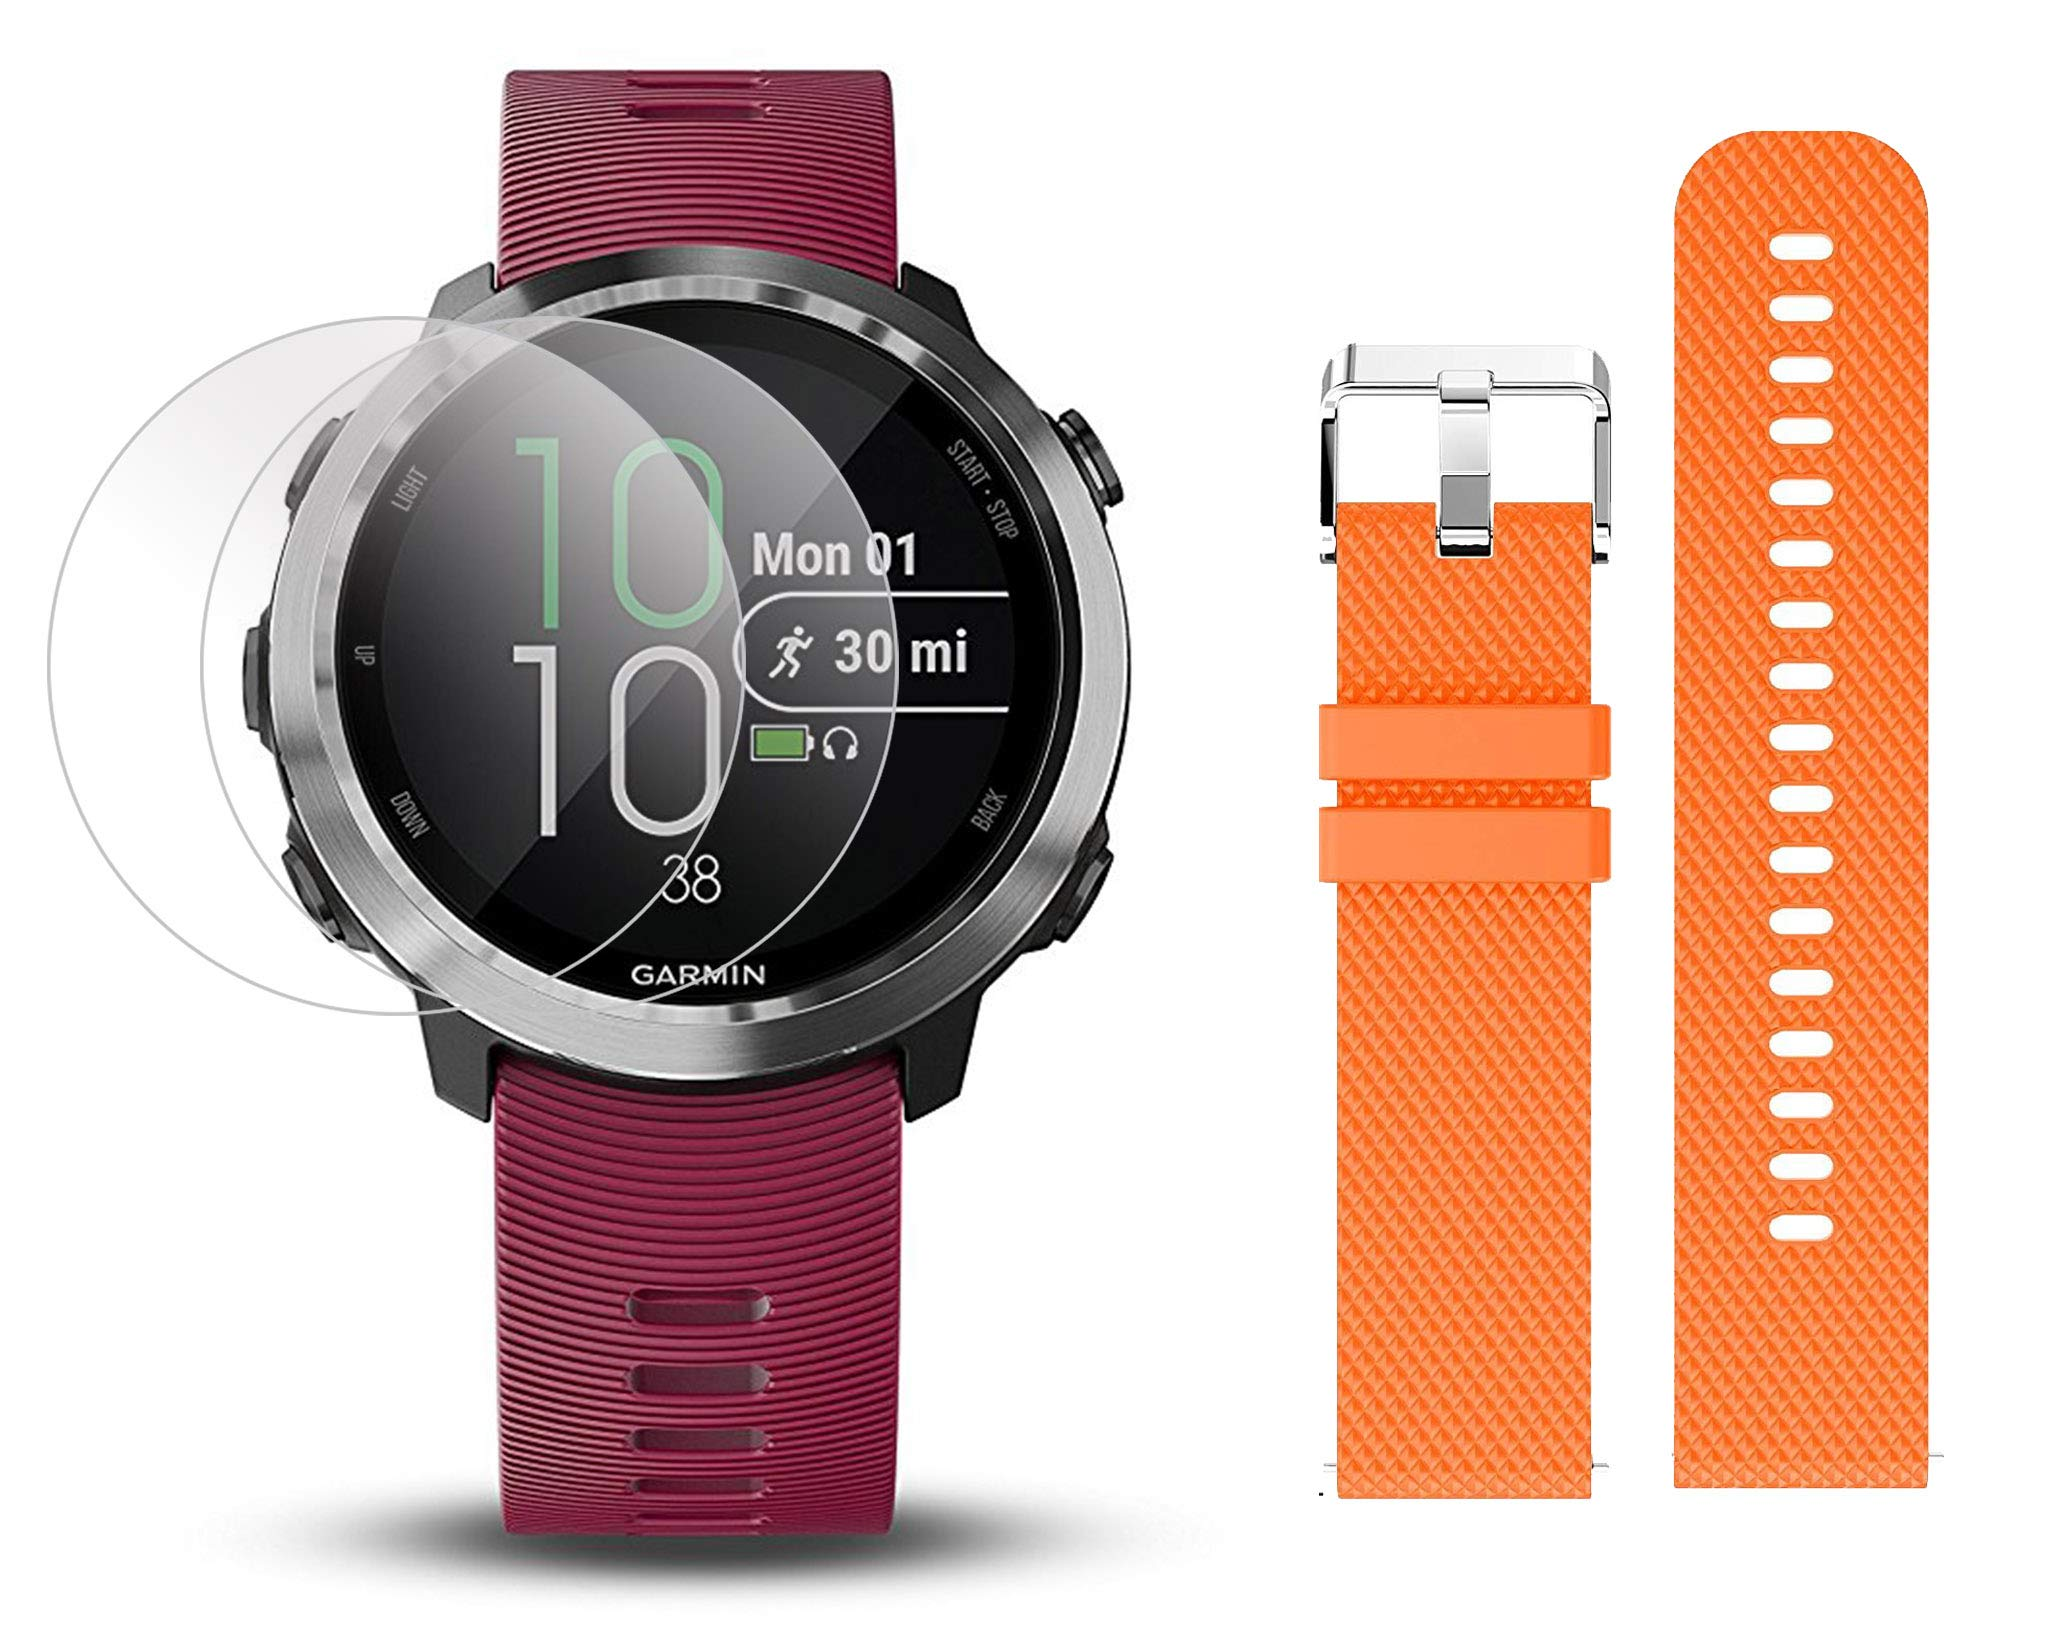 Garmin Forerunner 645 Music Bundle with Extra Band & HD Screen Protector Film (x4) | Running GPS Watch, Wrist HR, Music & Spotify, Garmin Pay (Cerise + Music, Orange) by PlayBetter (Image #1)